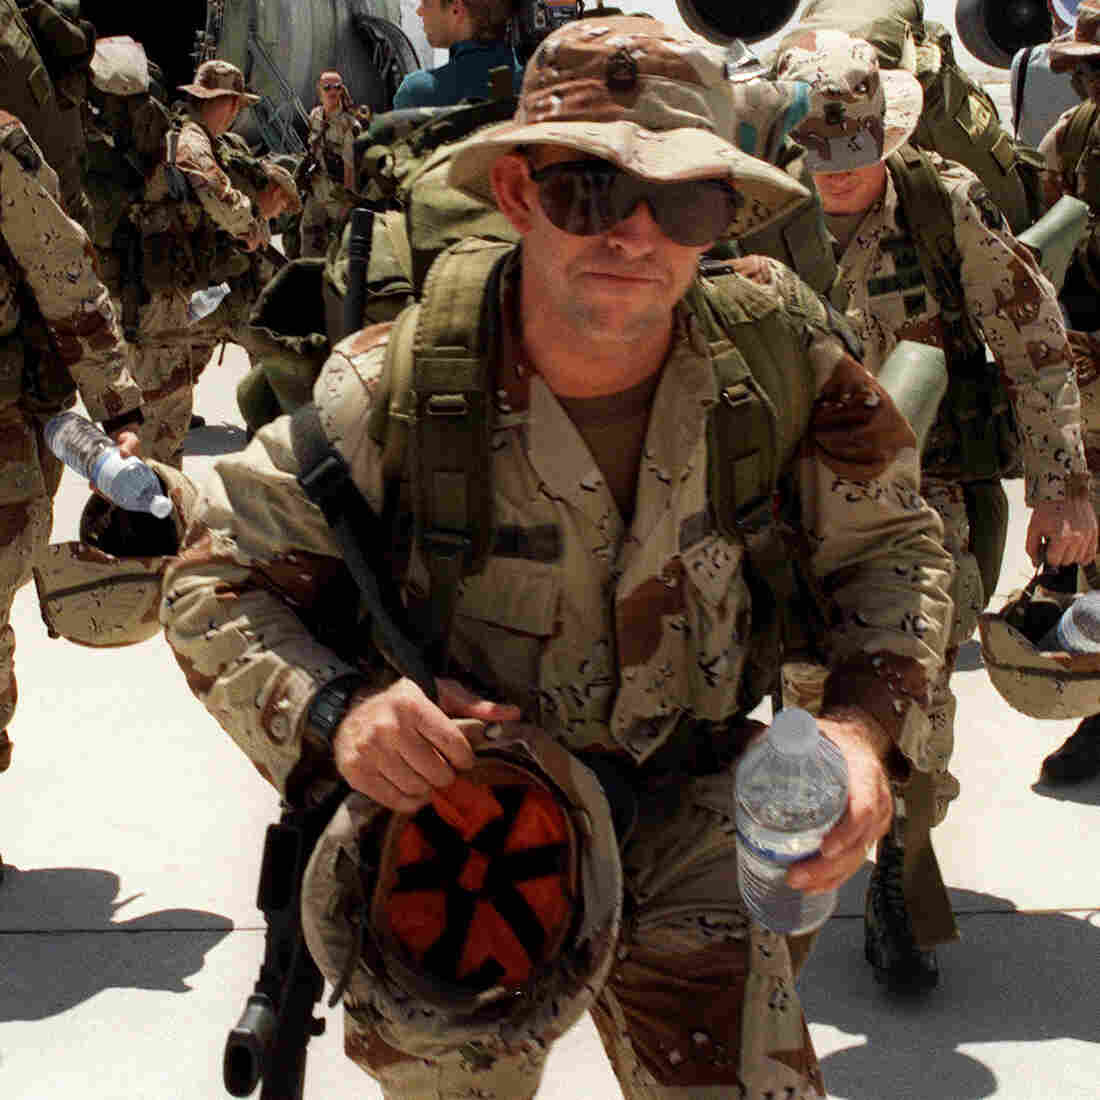 25 Years In Iraq, With No End In Sight